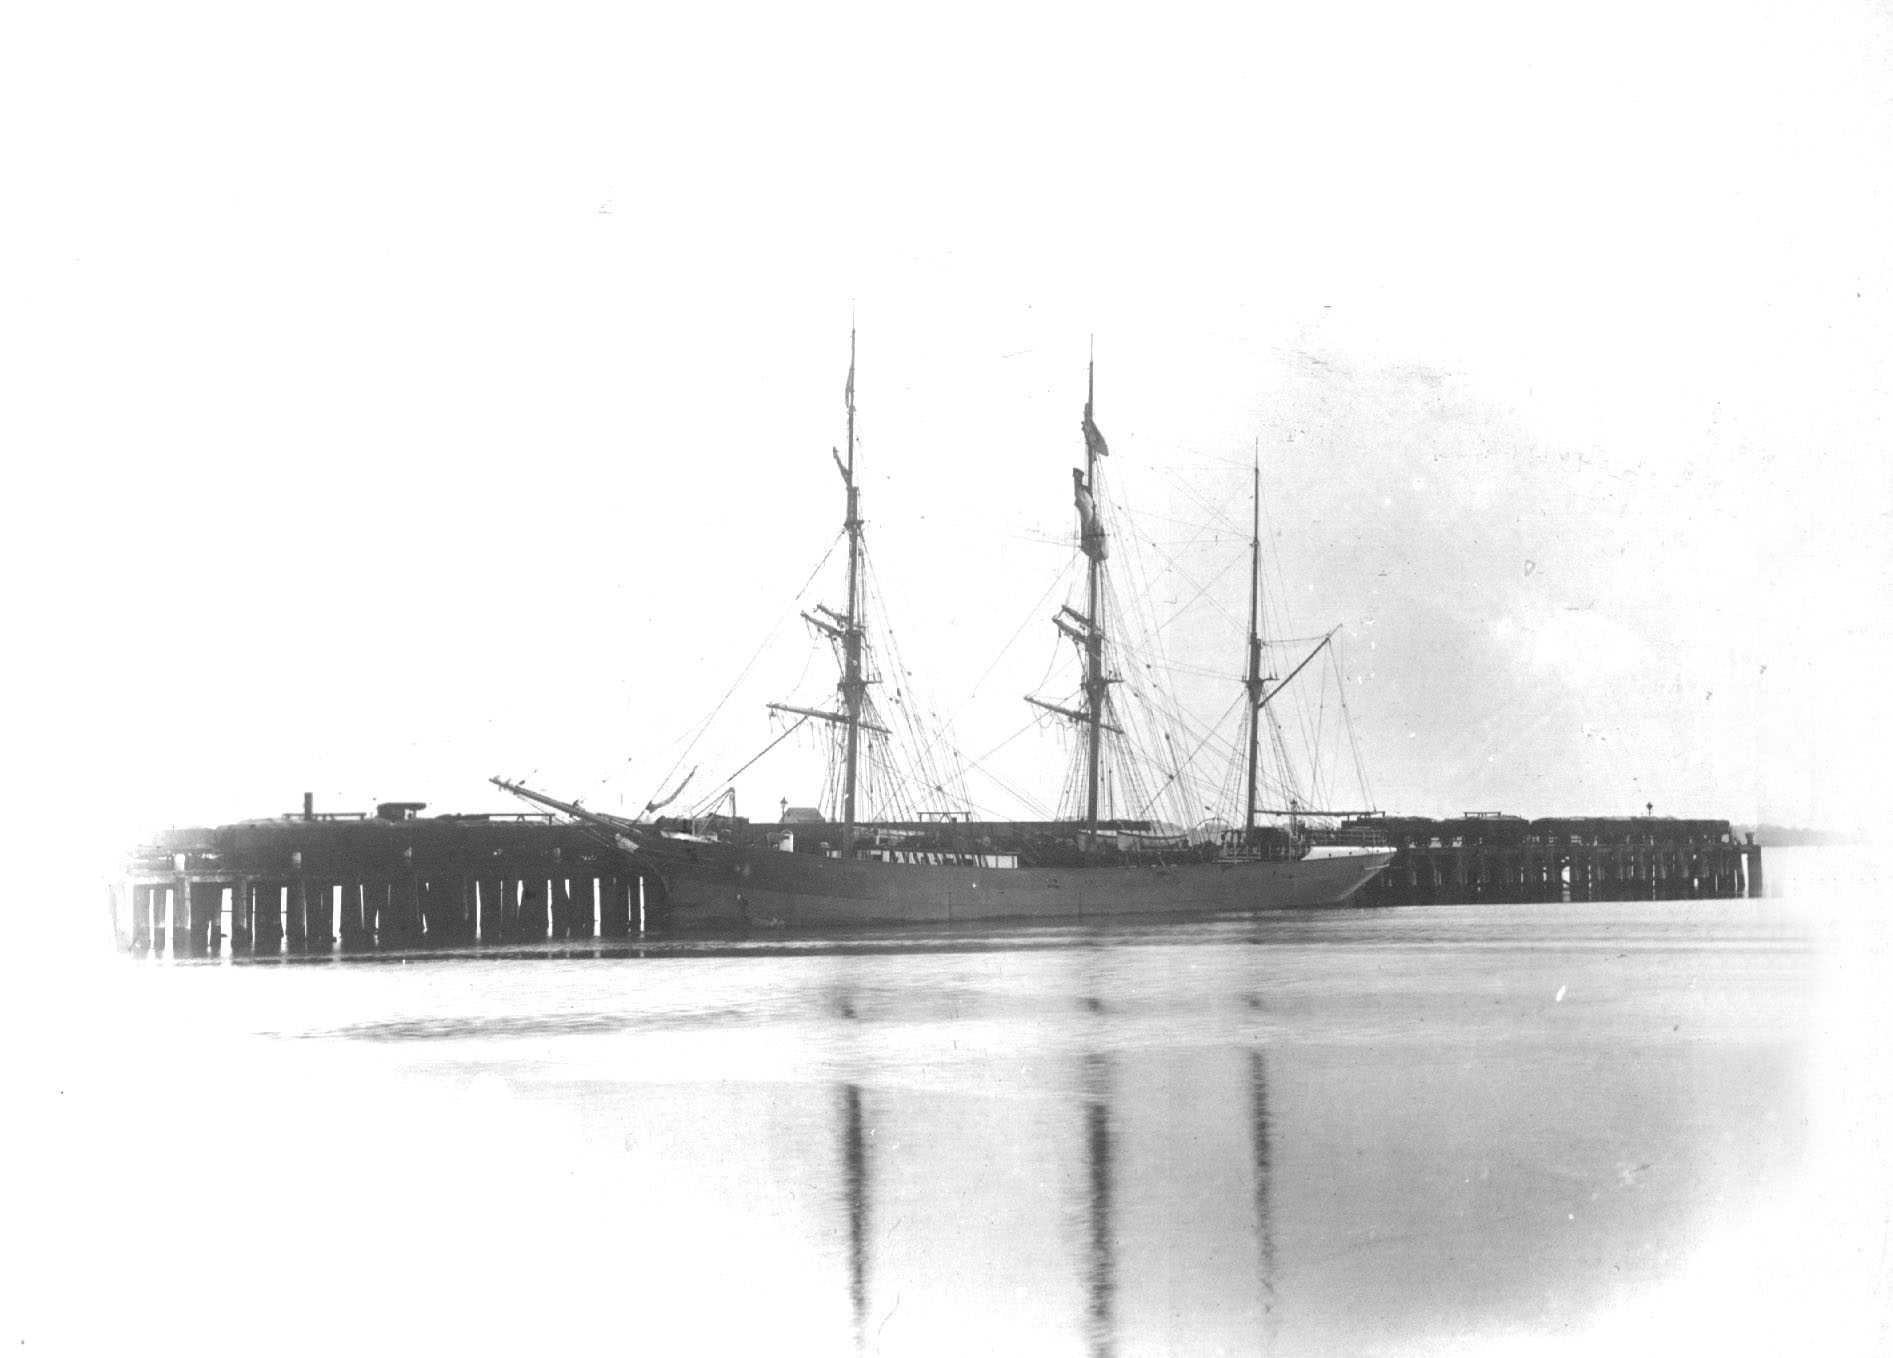 This image shows vessel berthed.